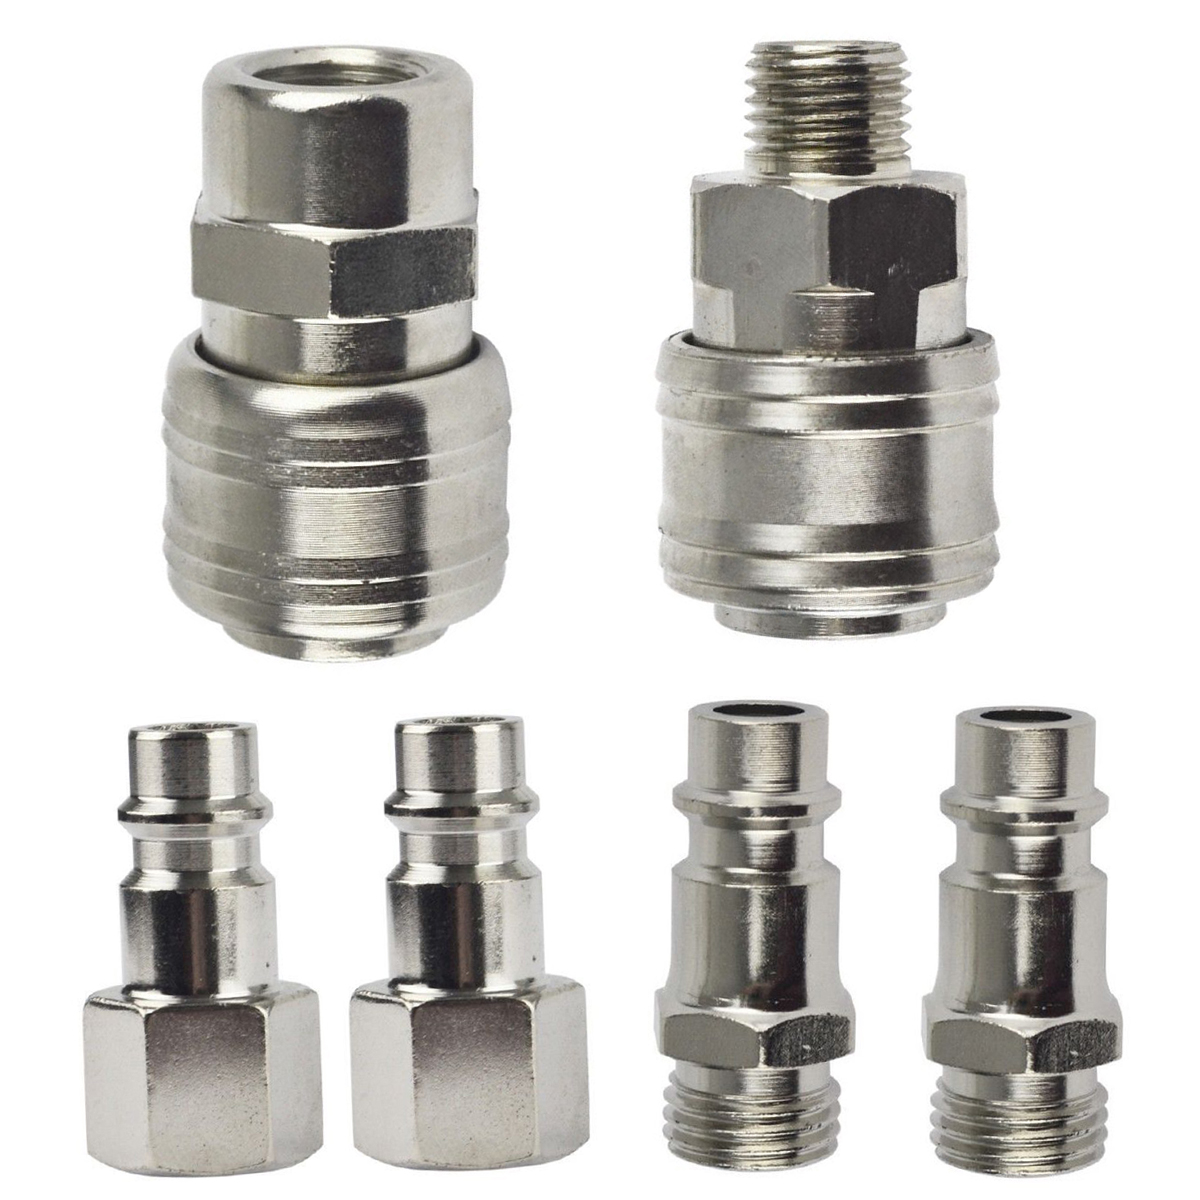 6pcs 1/4 BSP Euro Quick Coupler High Hardness Air Hose Compressor Fittings Male/Femal Quick Release Connector